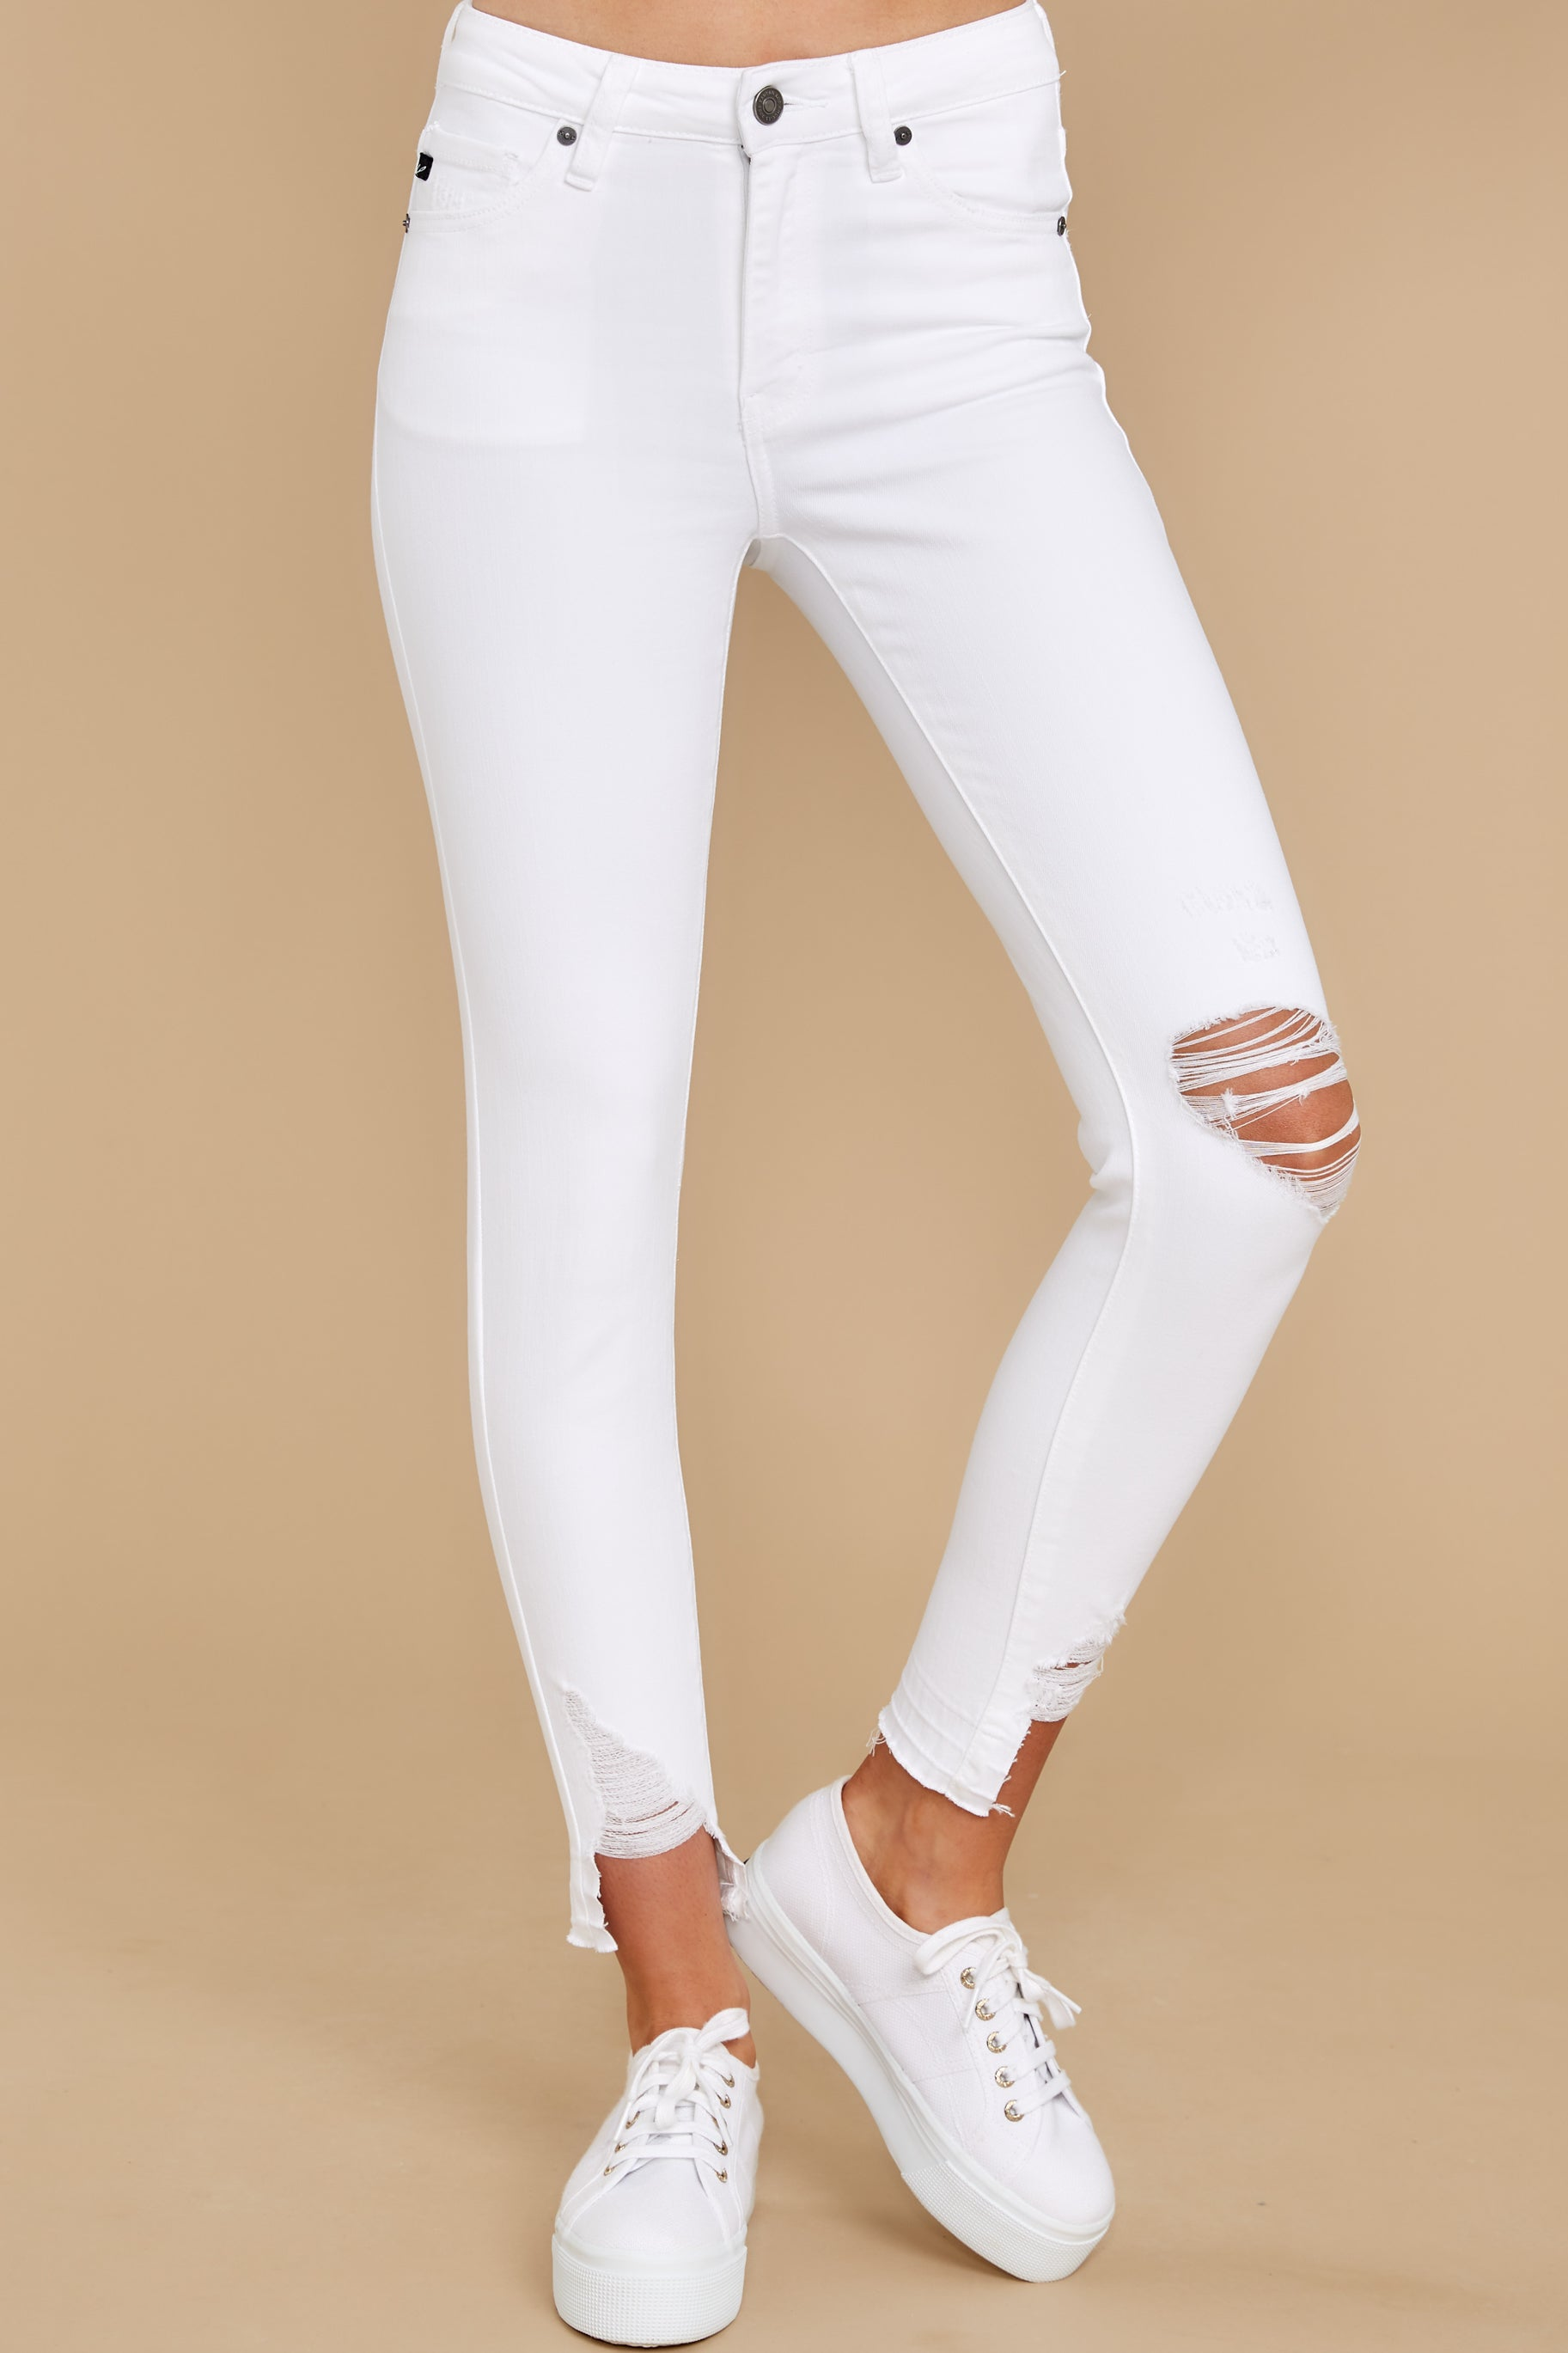 1 Come My Way White Distressed Skinny Jeans at reddress.com